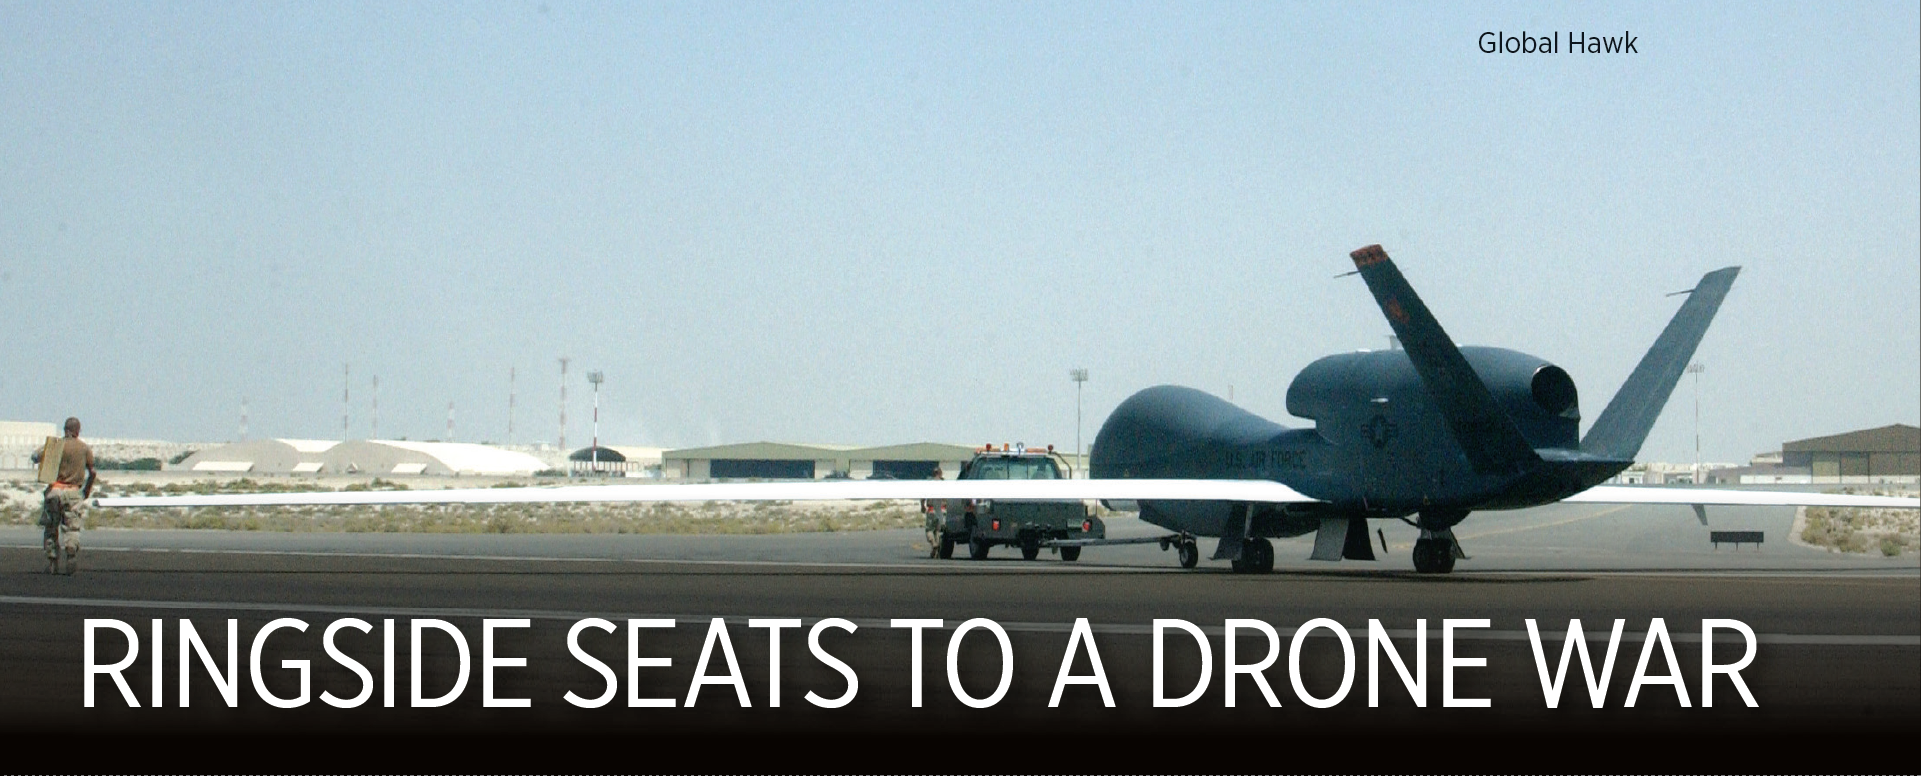 Ringside seats to a drone war